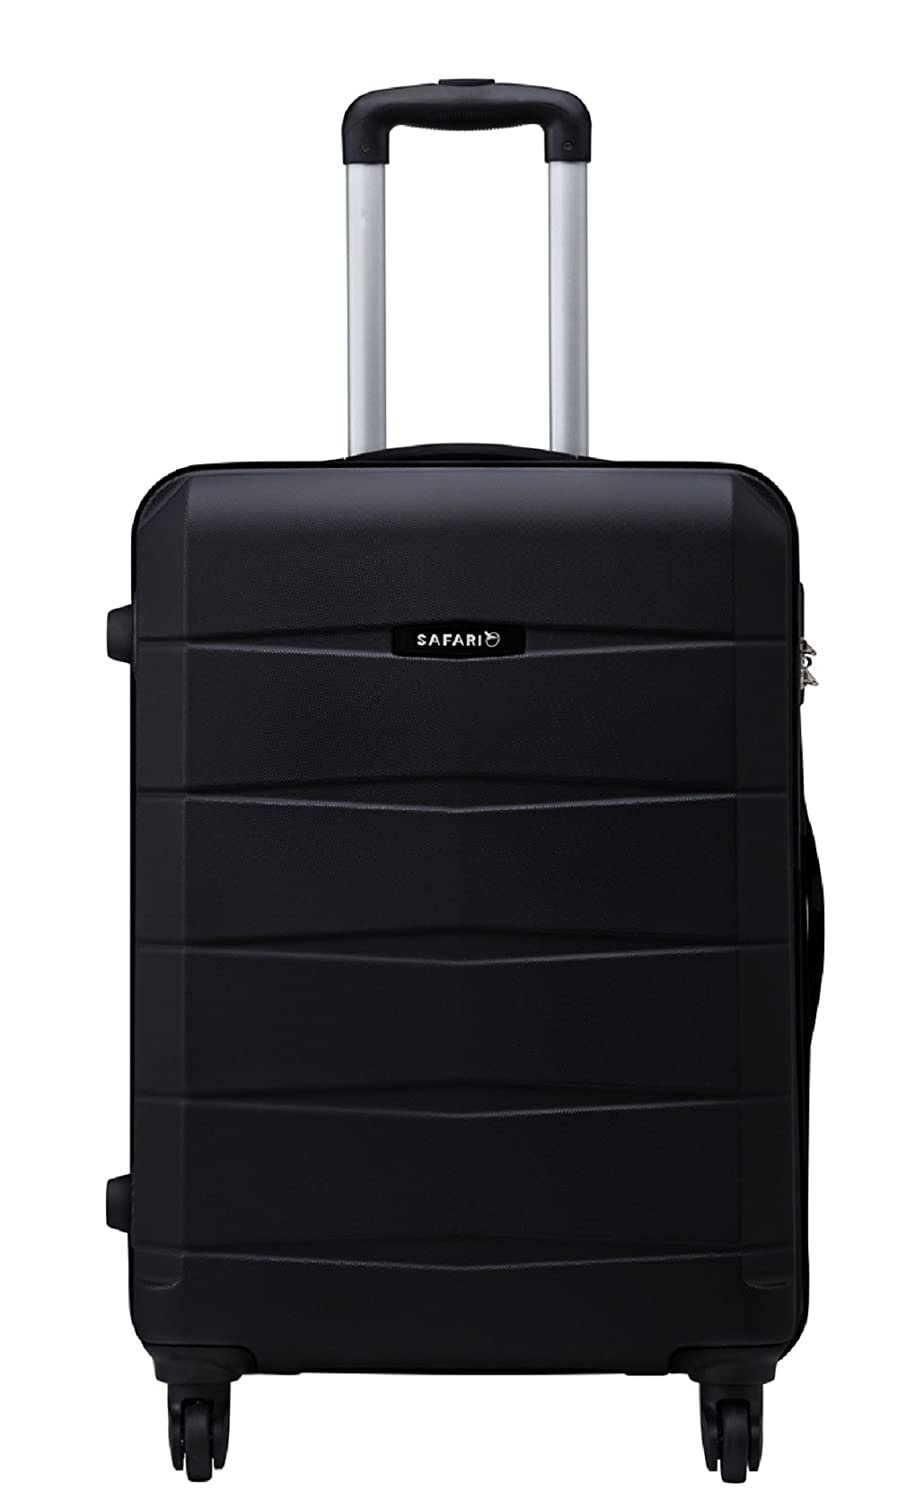 28976850072 Safari Regloss Antiscratch 76 Cms Polycarbonate Black Check-In 4 wheels  Hard Suitcase  Amazon.in  Bags